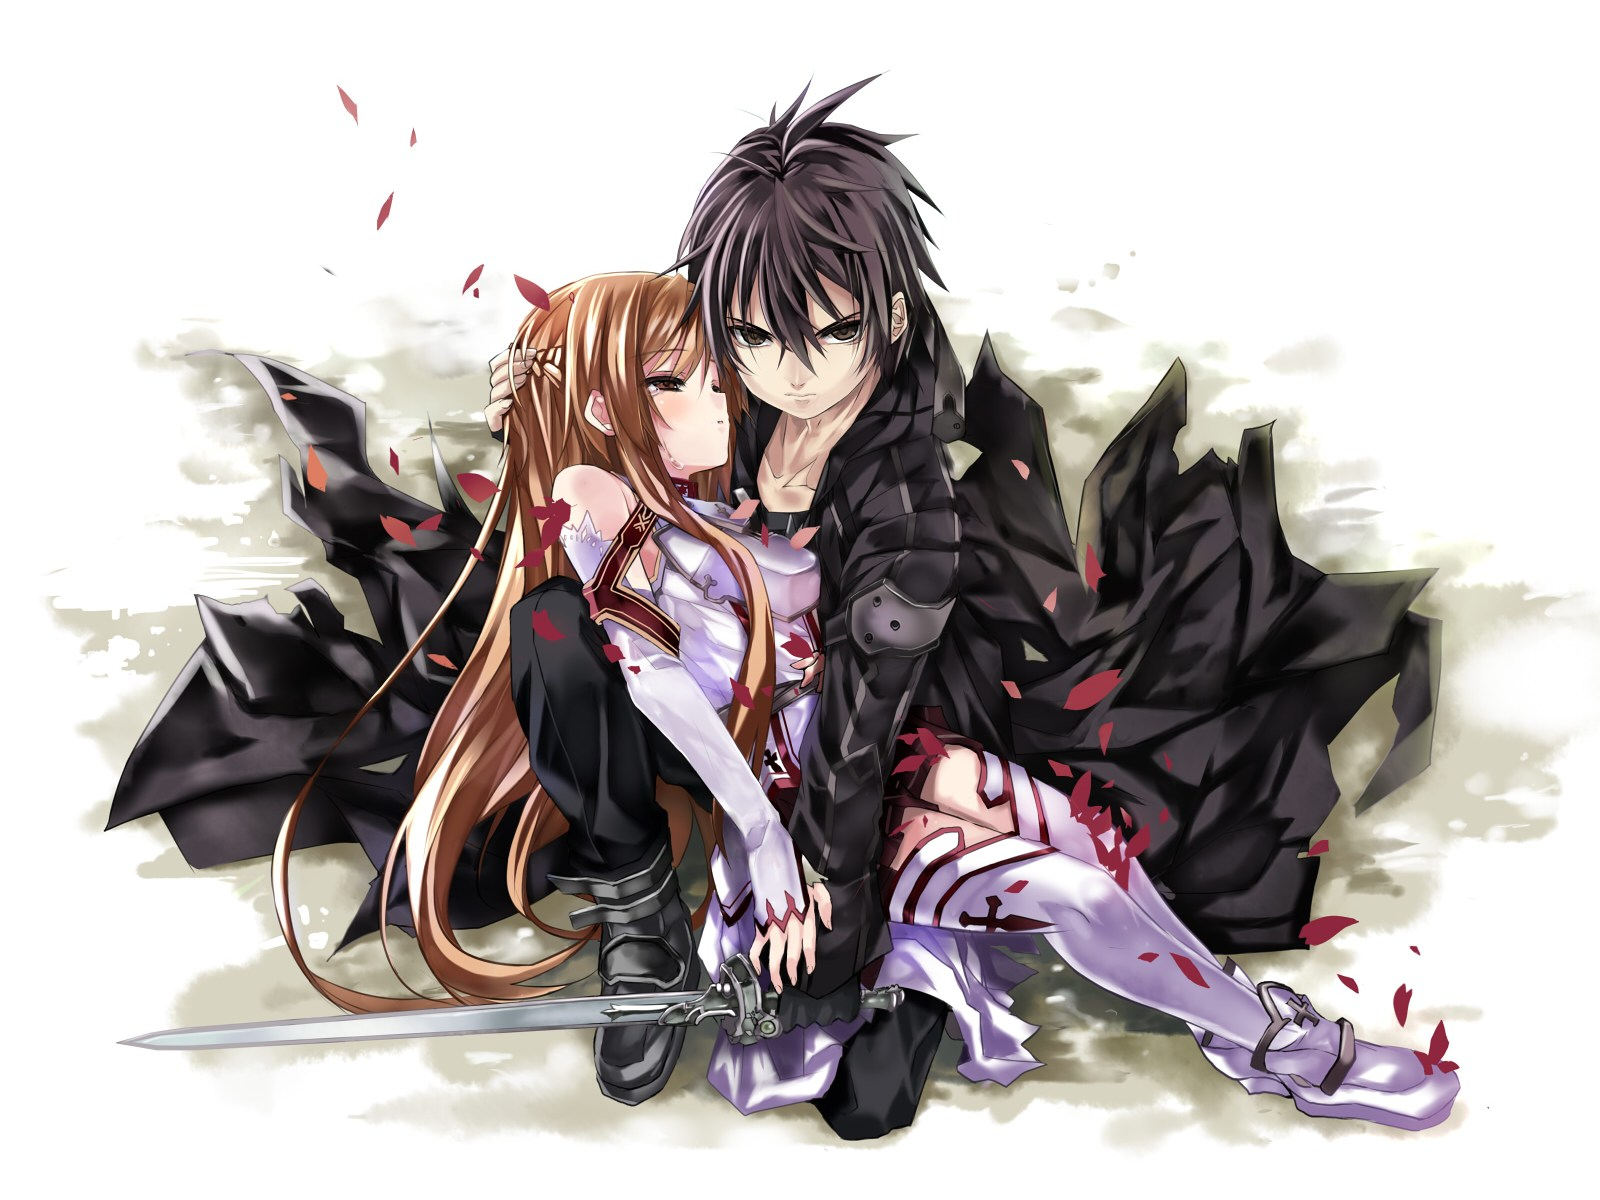 Foto Kirito Dan Asuna kirito and asuna - sword art online wallpaper (36026154